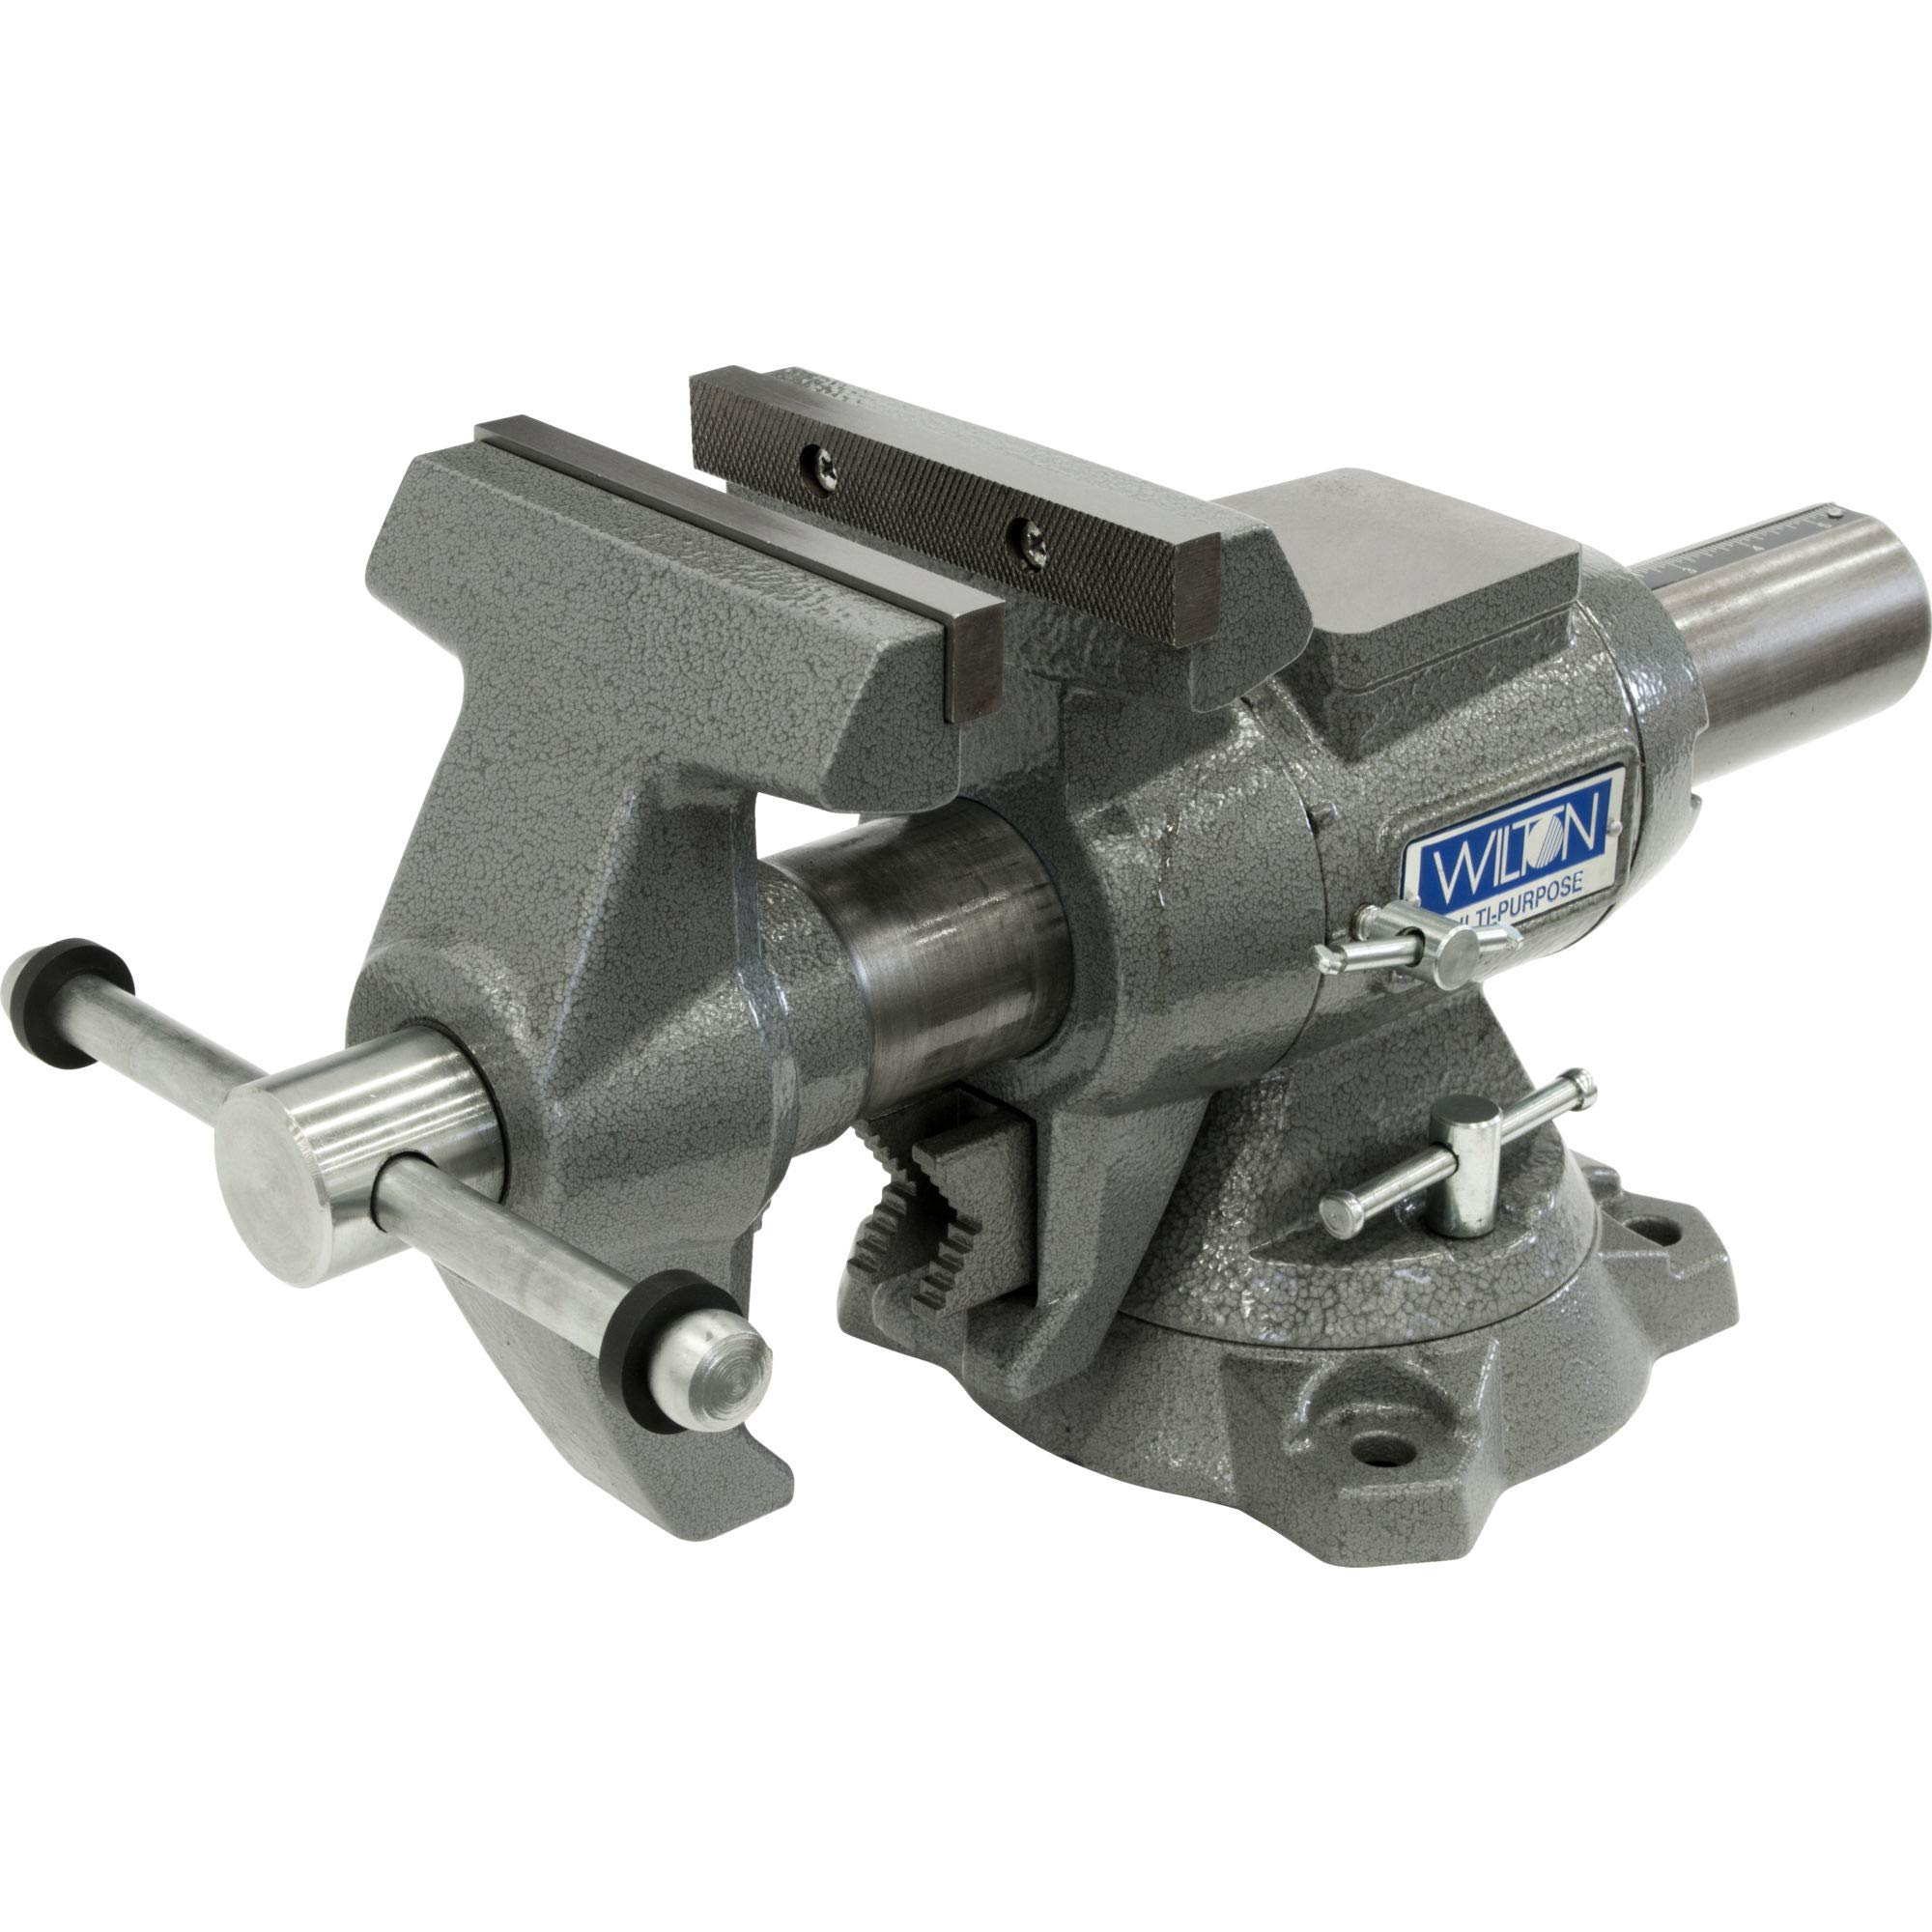 550P, Multi-Purpose Bench Vise, 5-1/2'' Jaw Width, 5'' Jaw Opening, 360° Rotating Head